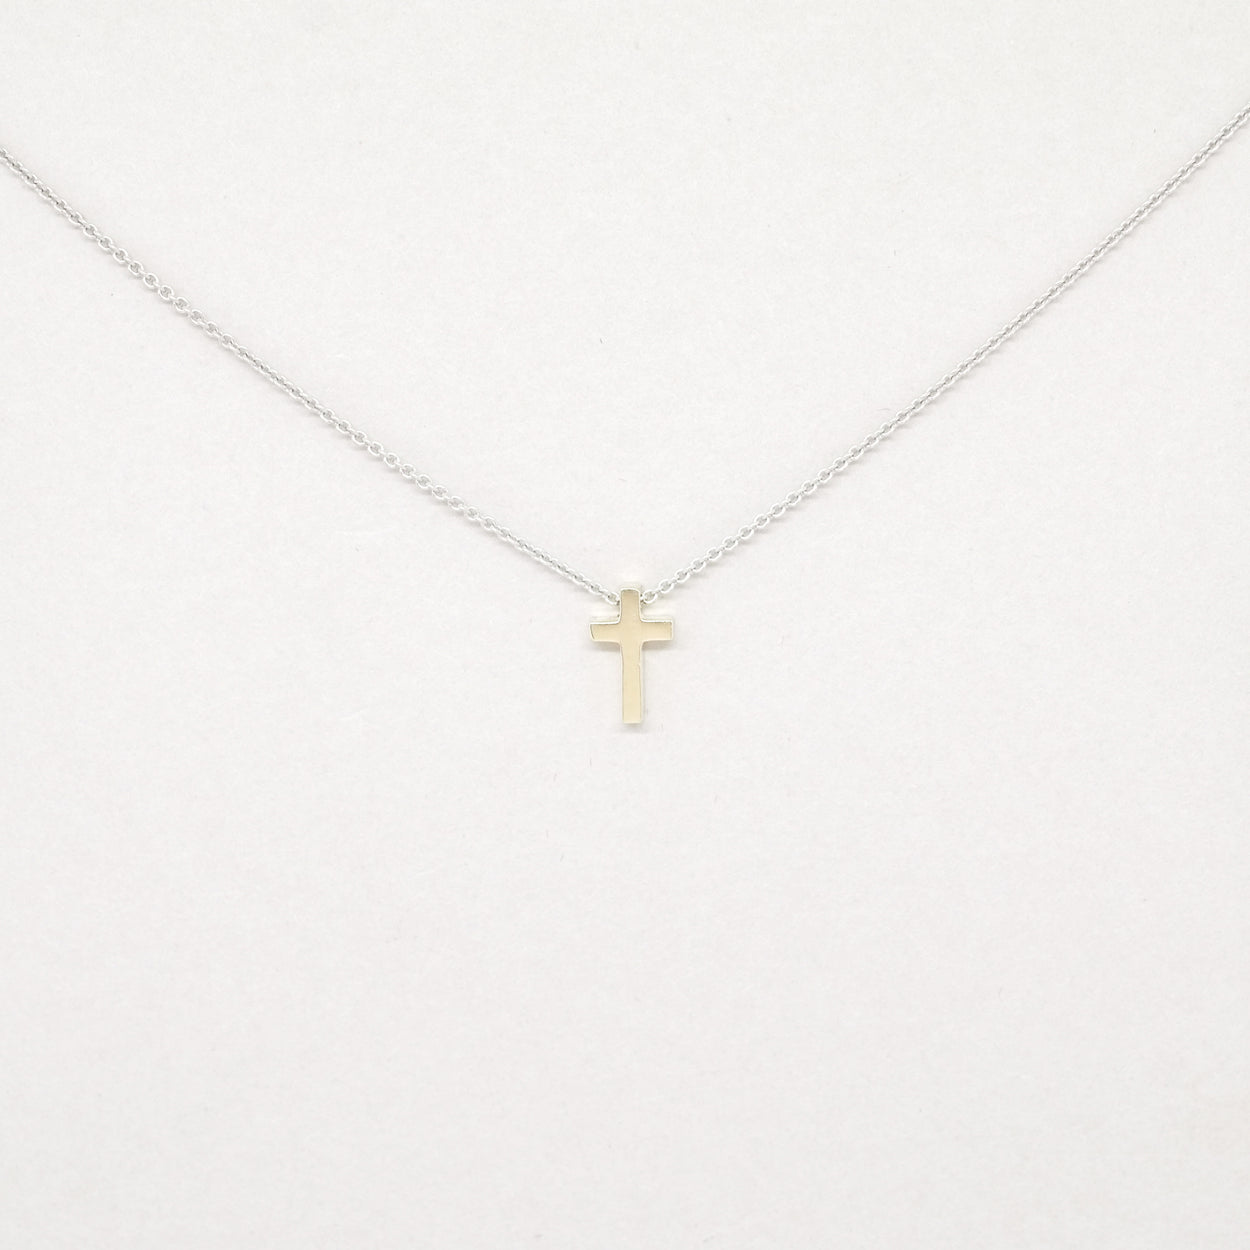 Mini Cross Necklace 14kt Gold